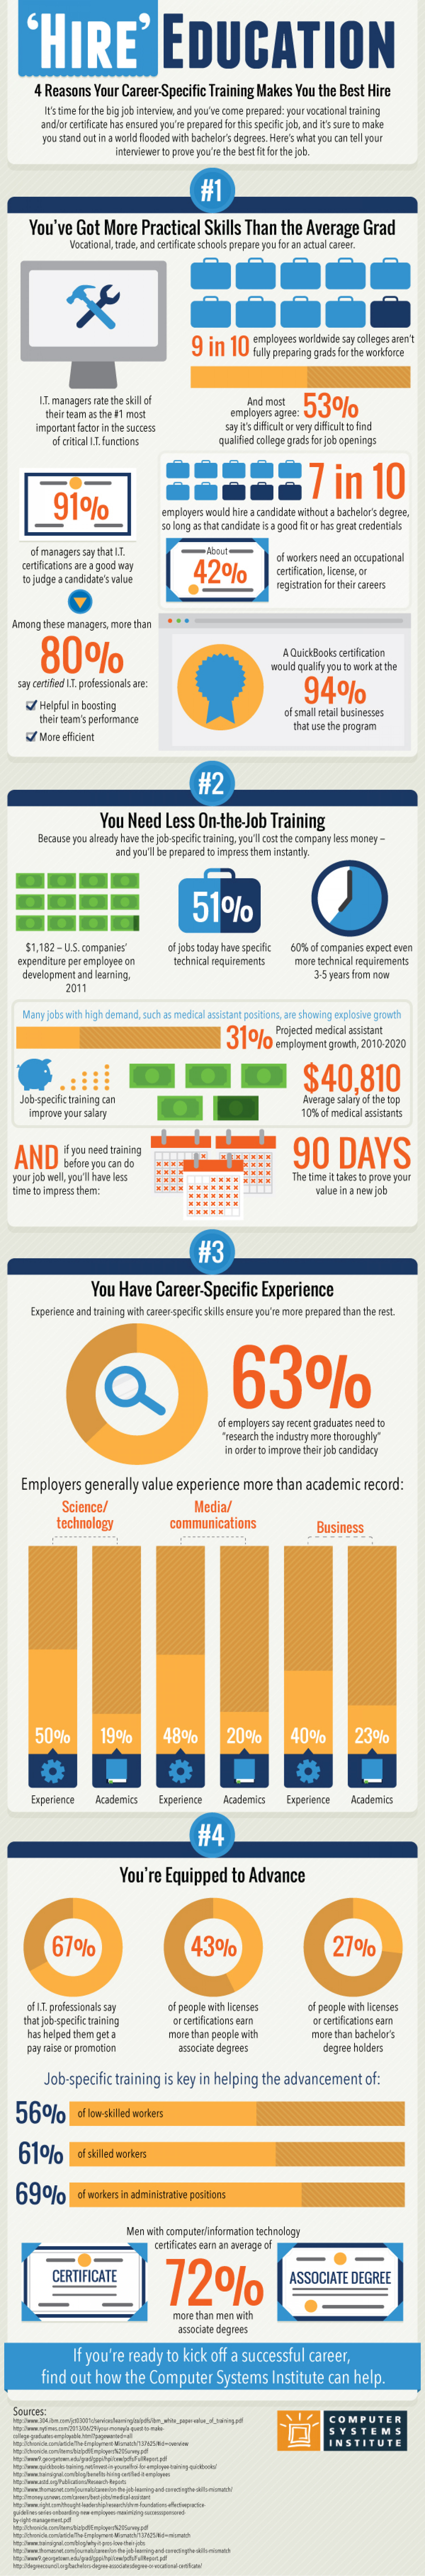 What Makes You The Best Hire Infographic